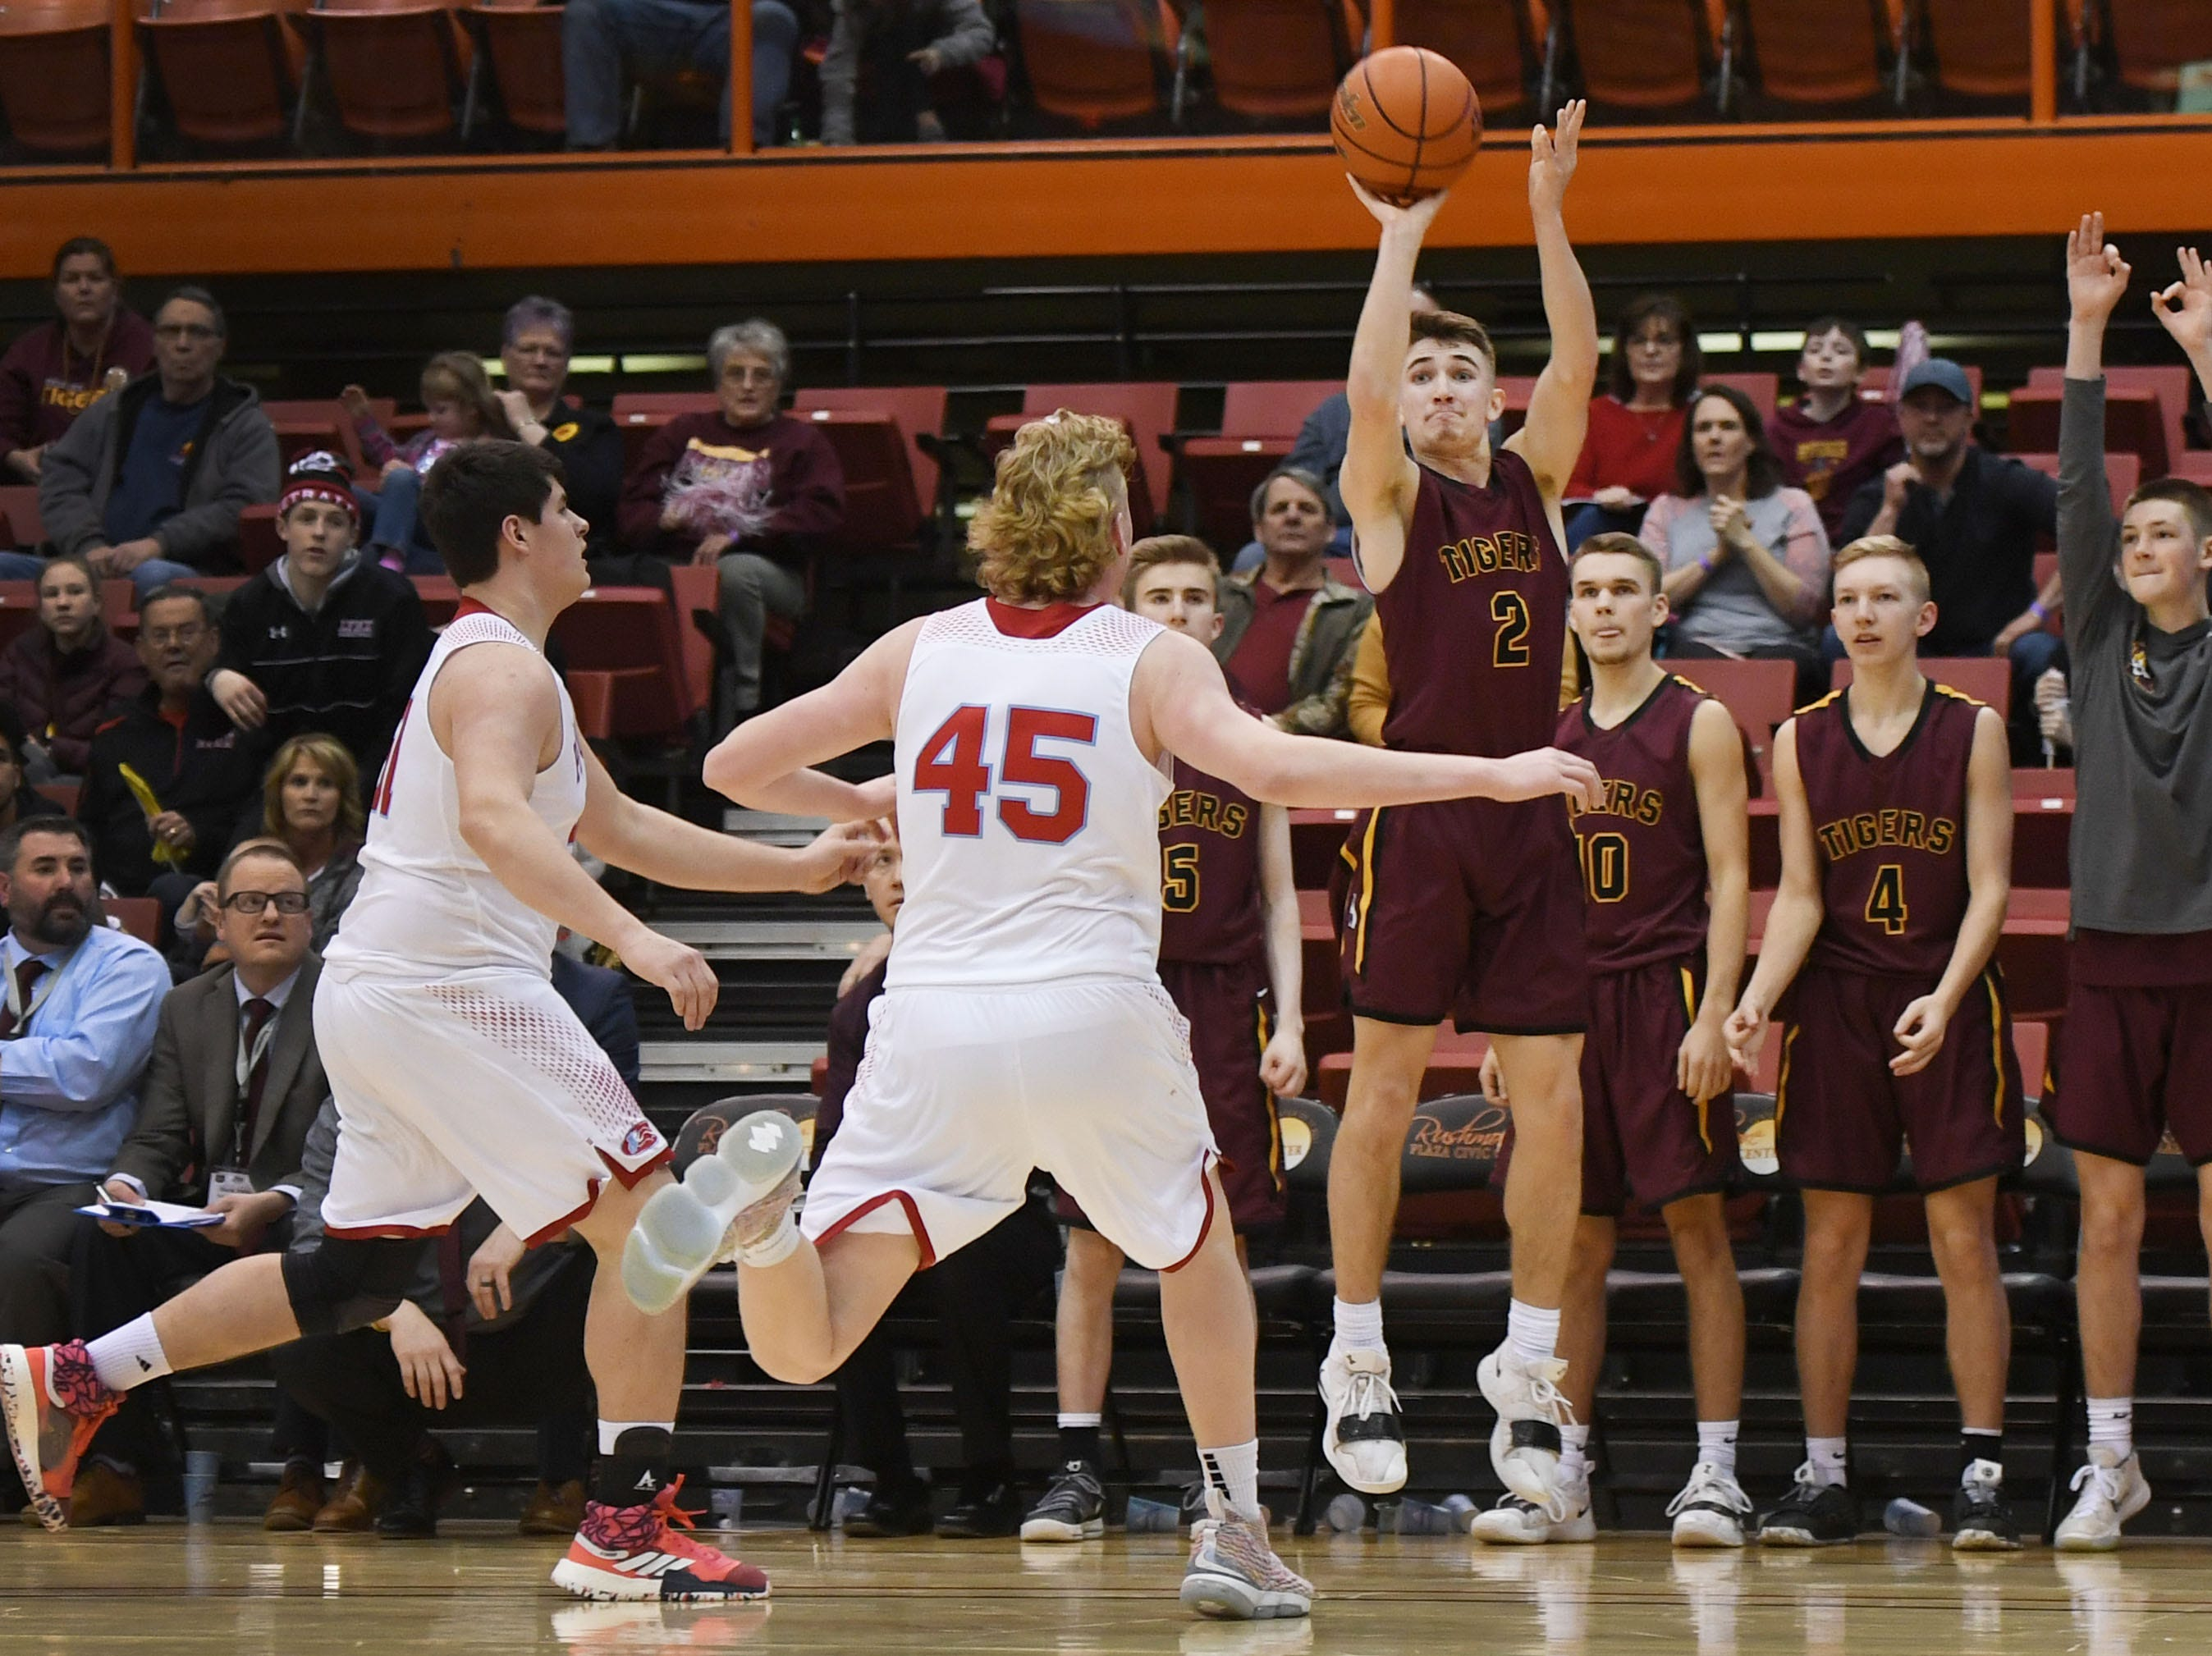 Harrisburg's Nick Hoyt takes a shot against Lincoln in the Class AA quarterfinals Thursday, March 14, in Rapid City.